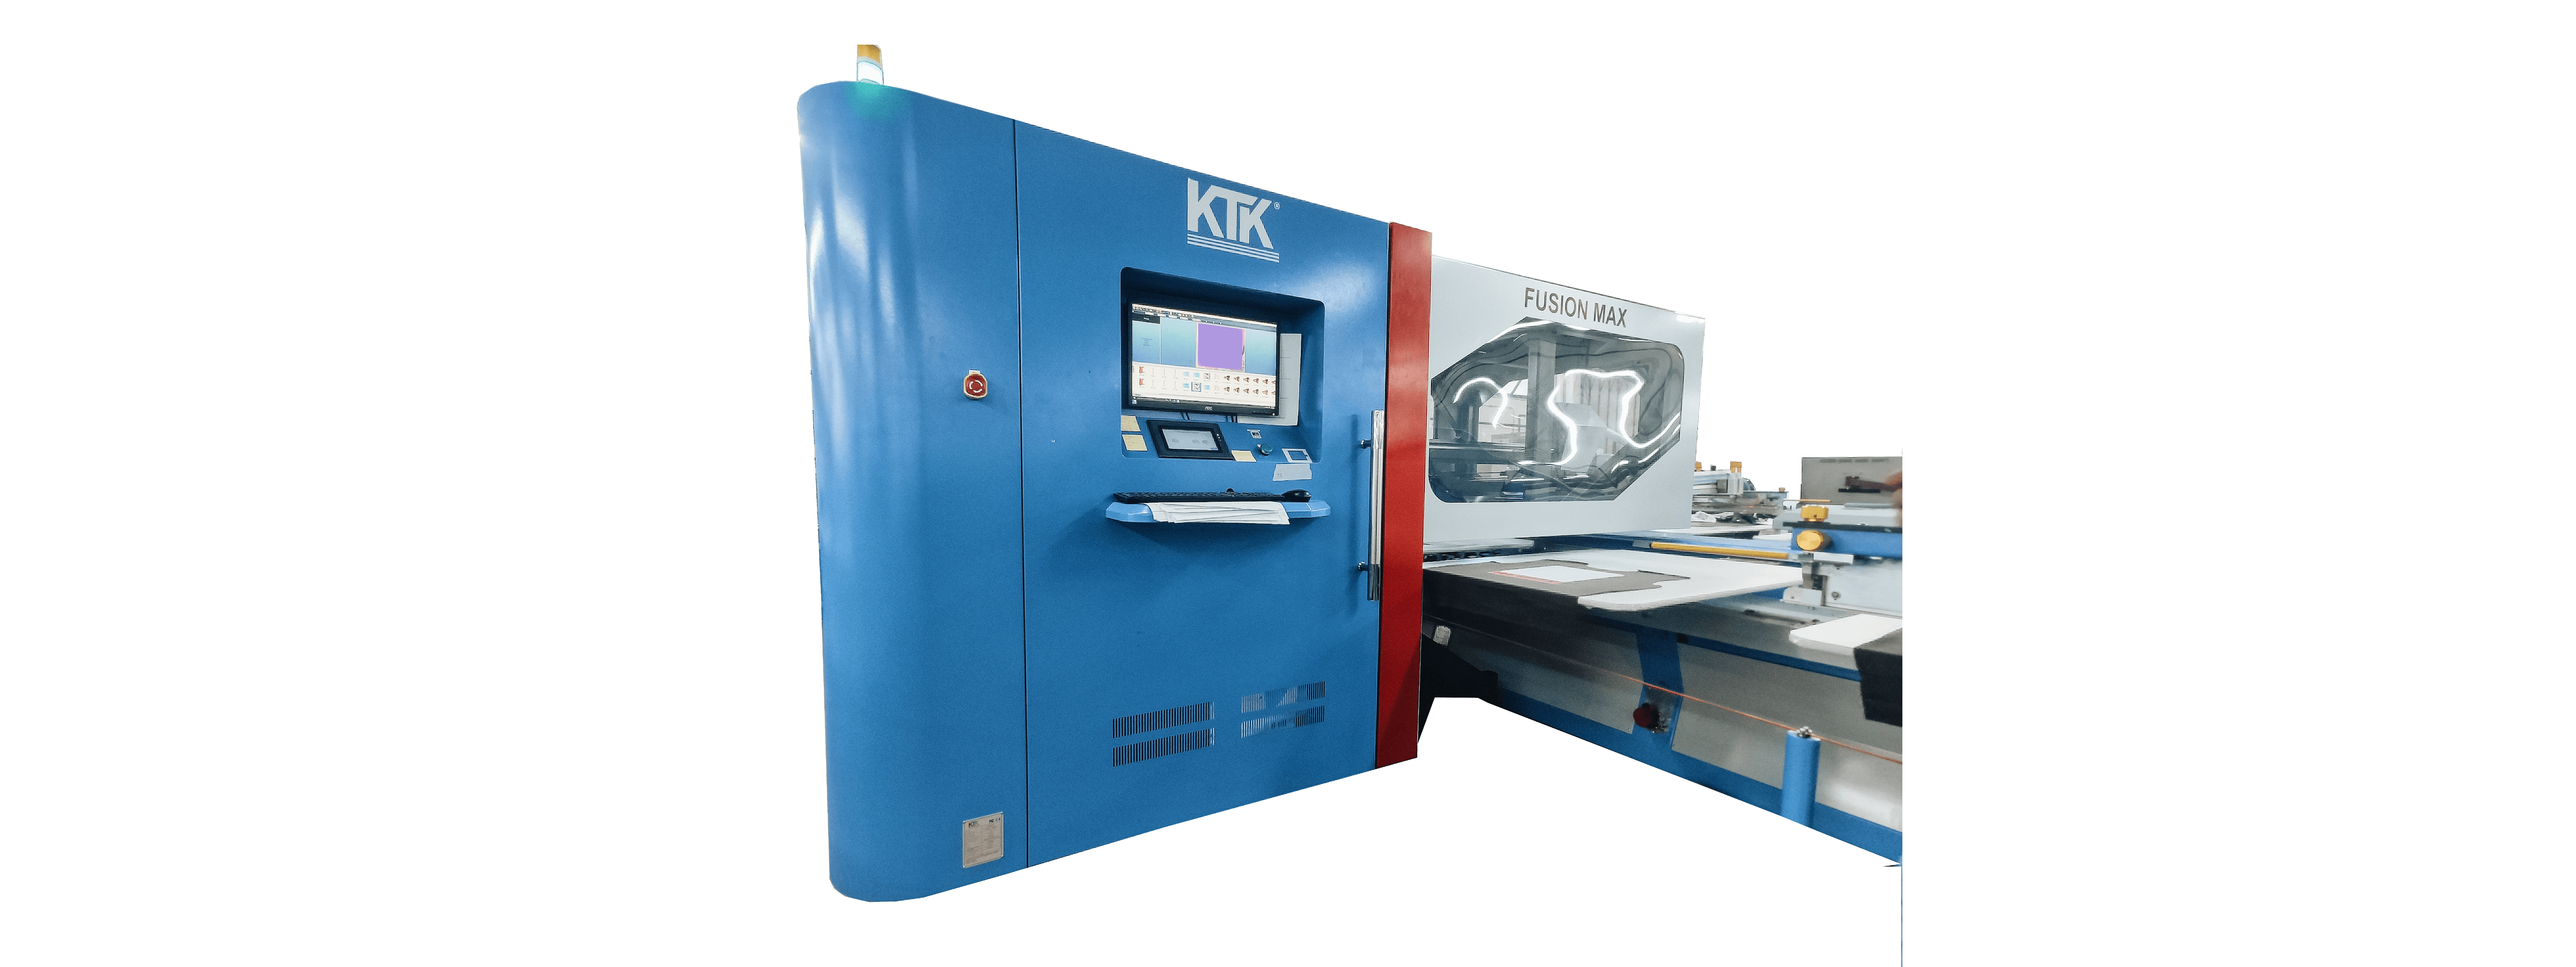 KTK Fusion Max – Digital printing taking one step further